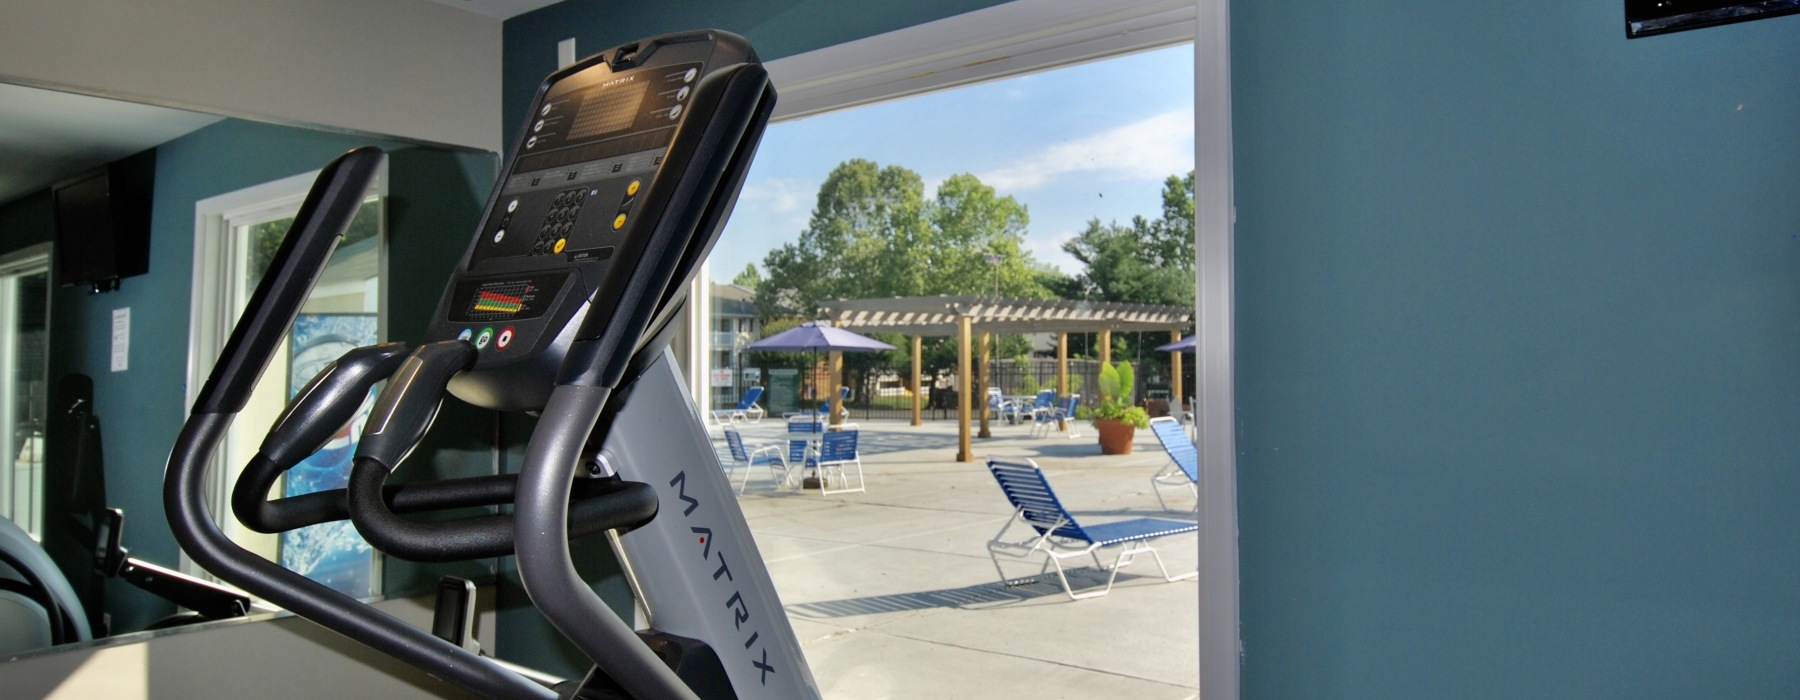 Cardio machine with a window view of the pool deck